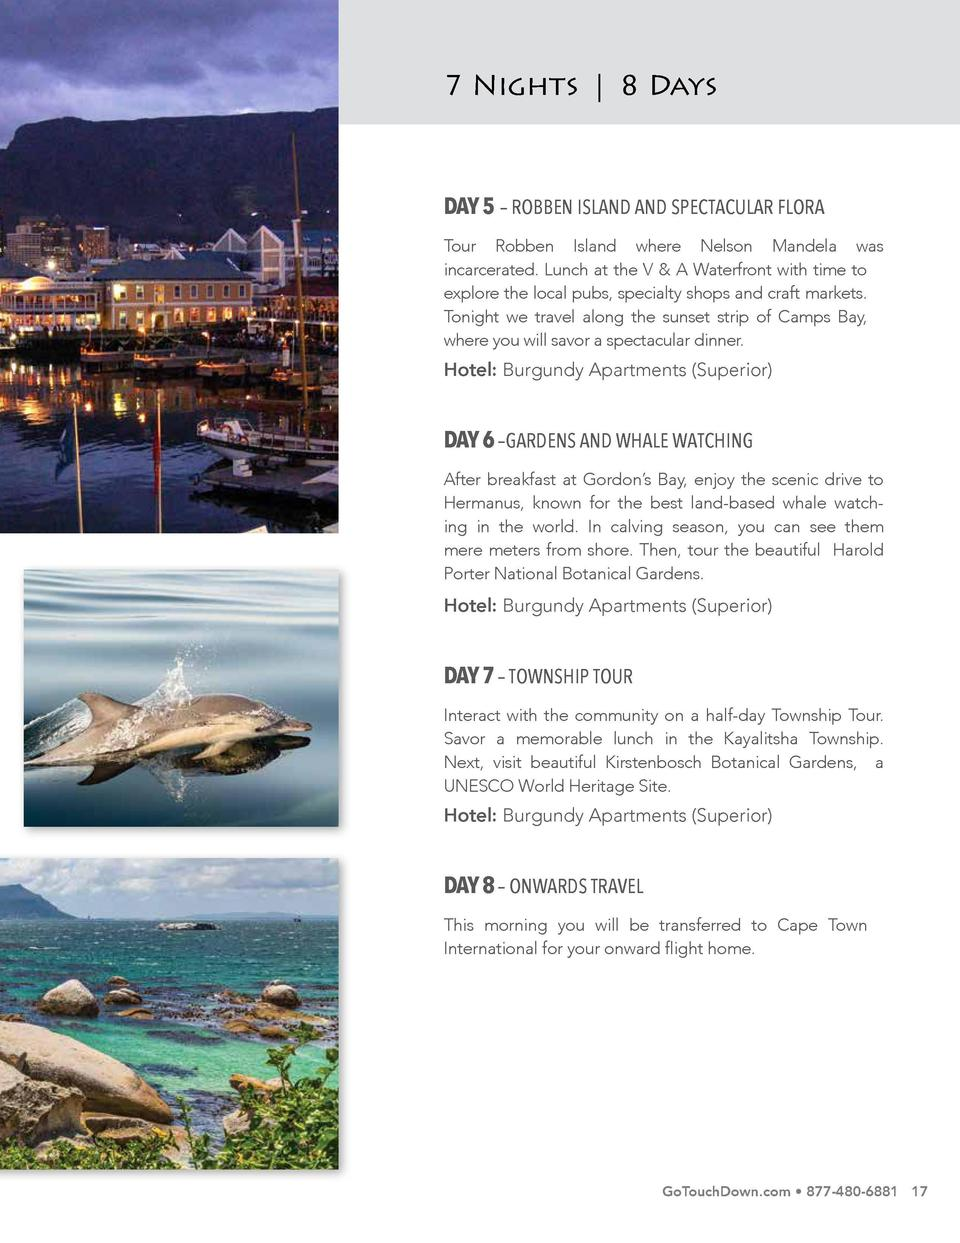 Cape Town Tour   Itinerary  7 Nights   8 Days  DAY 1     ARRIVE CAPE TOWN  DAY 5     GARDENS AND WHALE WATCHING  Upon arri...